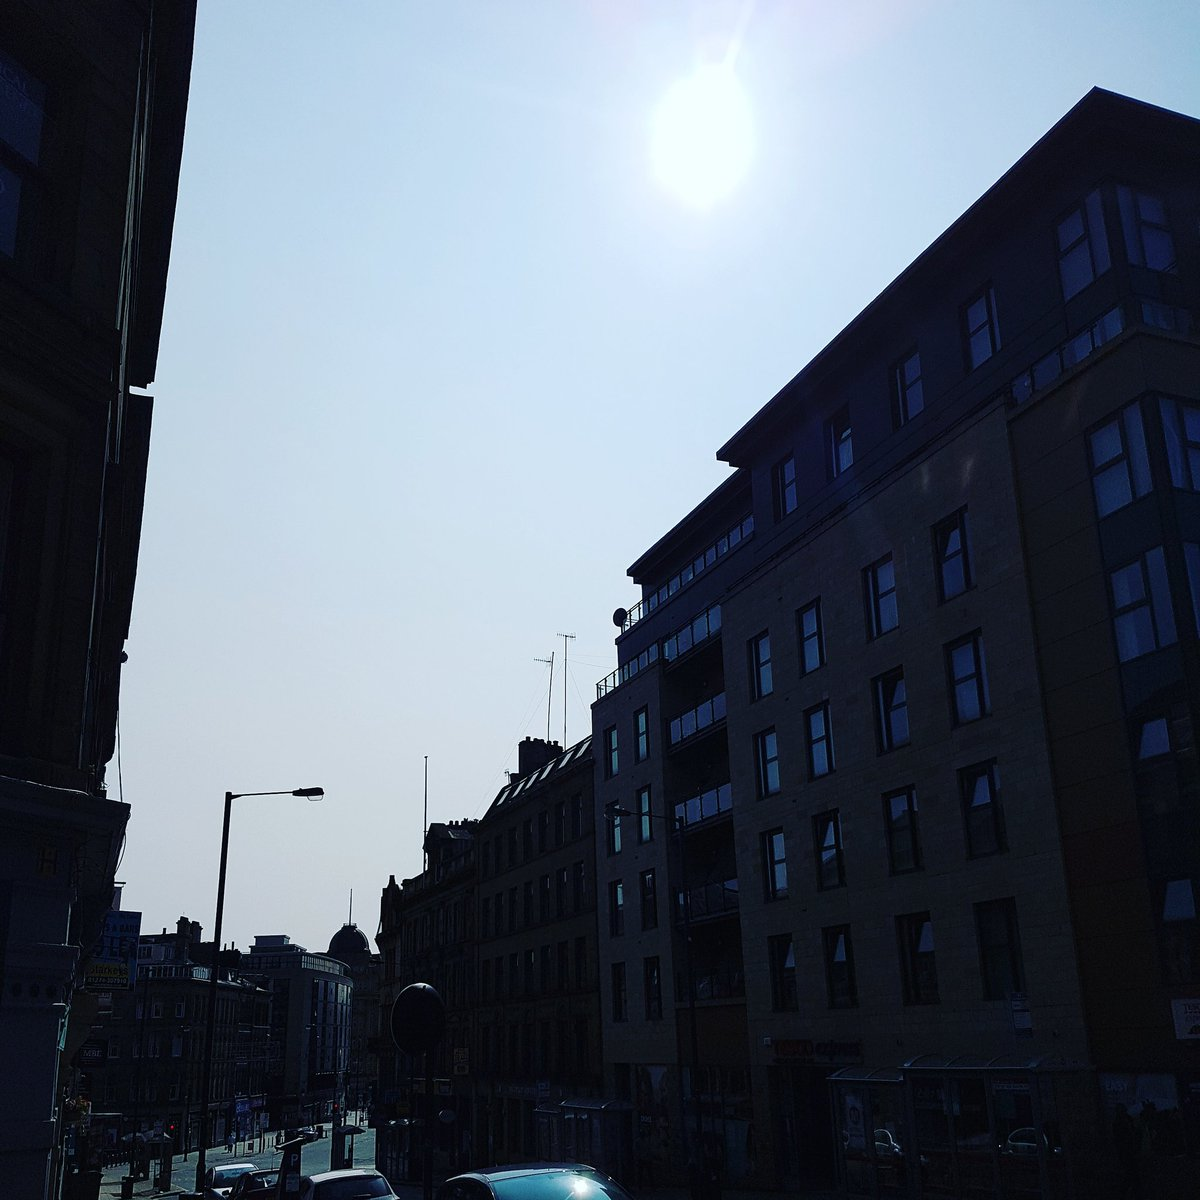 The Sun is shining on Bradford today and we are OPEN til 4:30  #sunshine #sundays #bradford #anxmenswear<br>http://pic.twitter.com/Wtewvol3p3